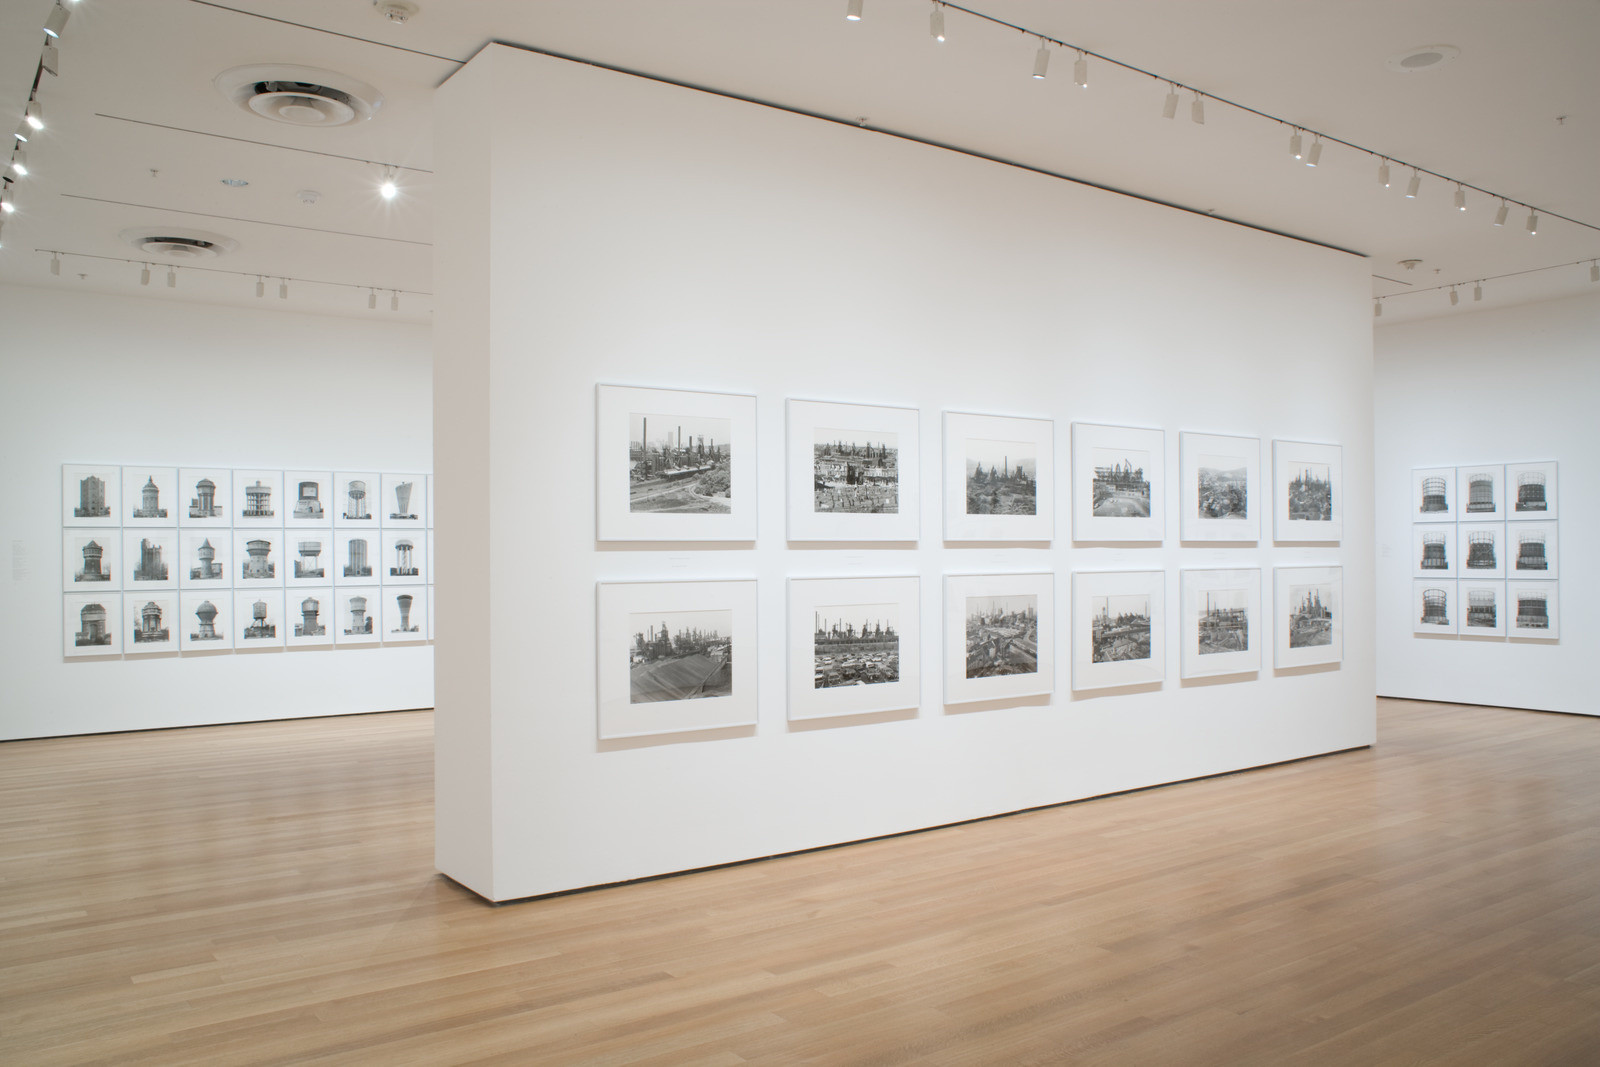 Installation view, Bernd and Hilla Becher: The Museum of Modern Art,, November 20, 2004–August 5, 2015